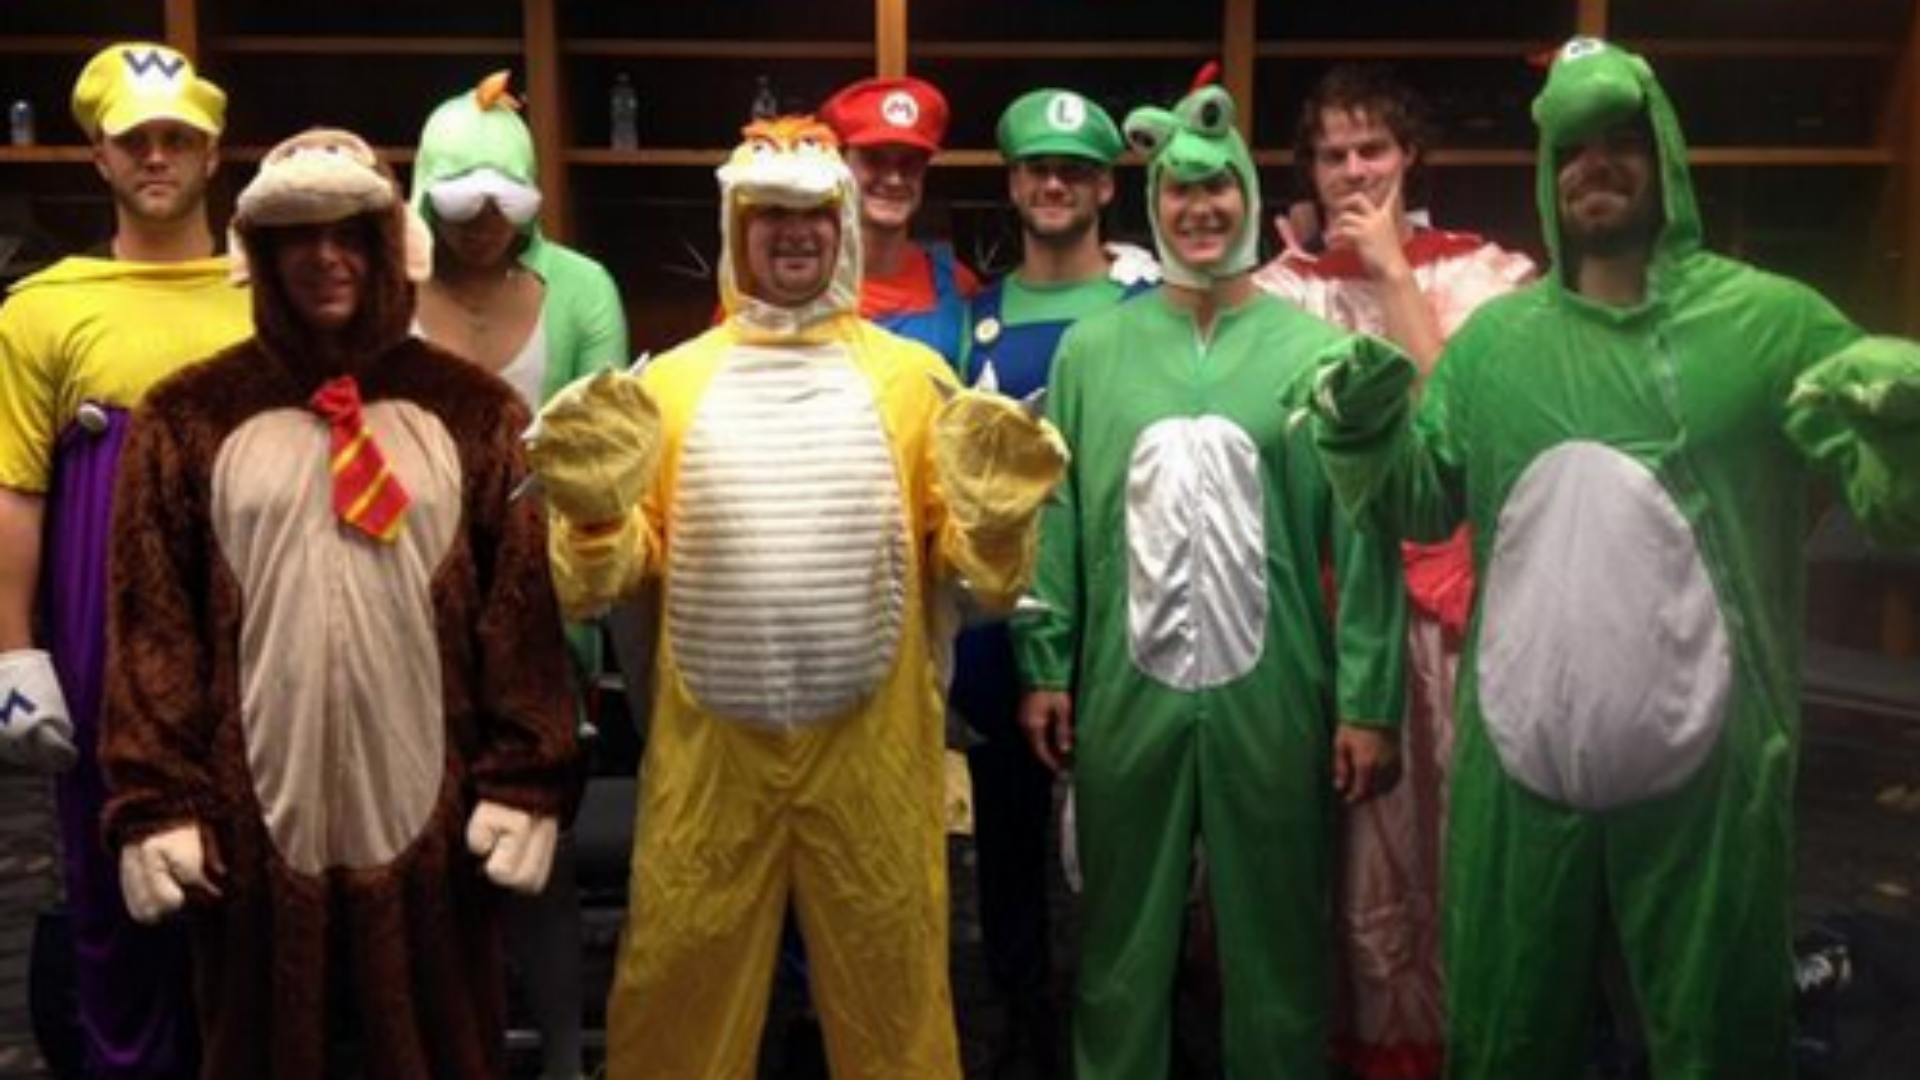 ... t&a-bay-rookies-091214-ftr-twitter.png  sc 1 st  Sporting News & Tampa Bay Rays rookies dress up in Mario Kart costumes | MLB ...